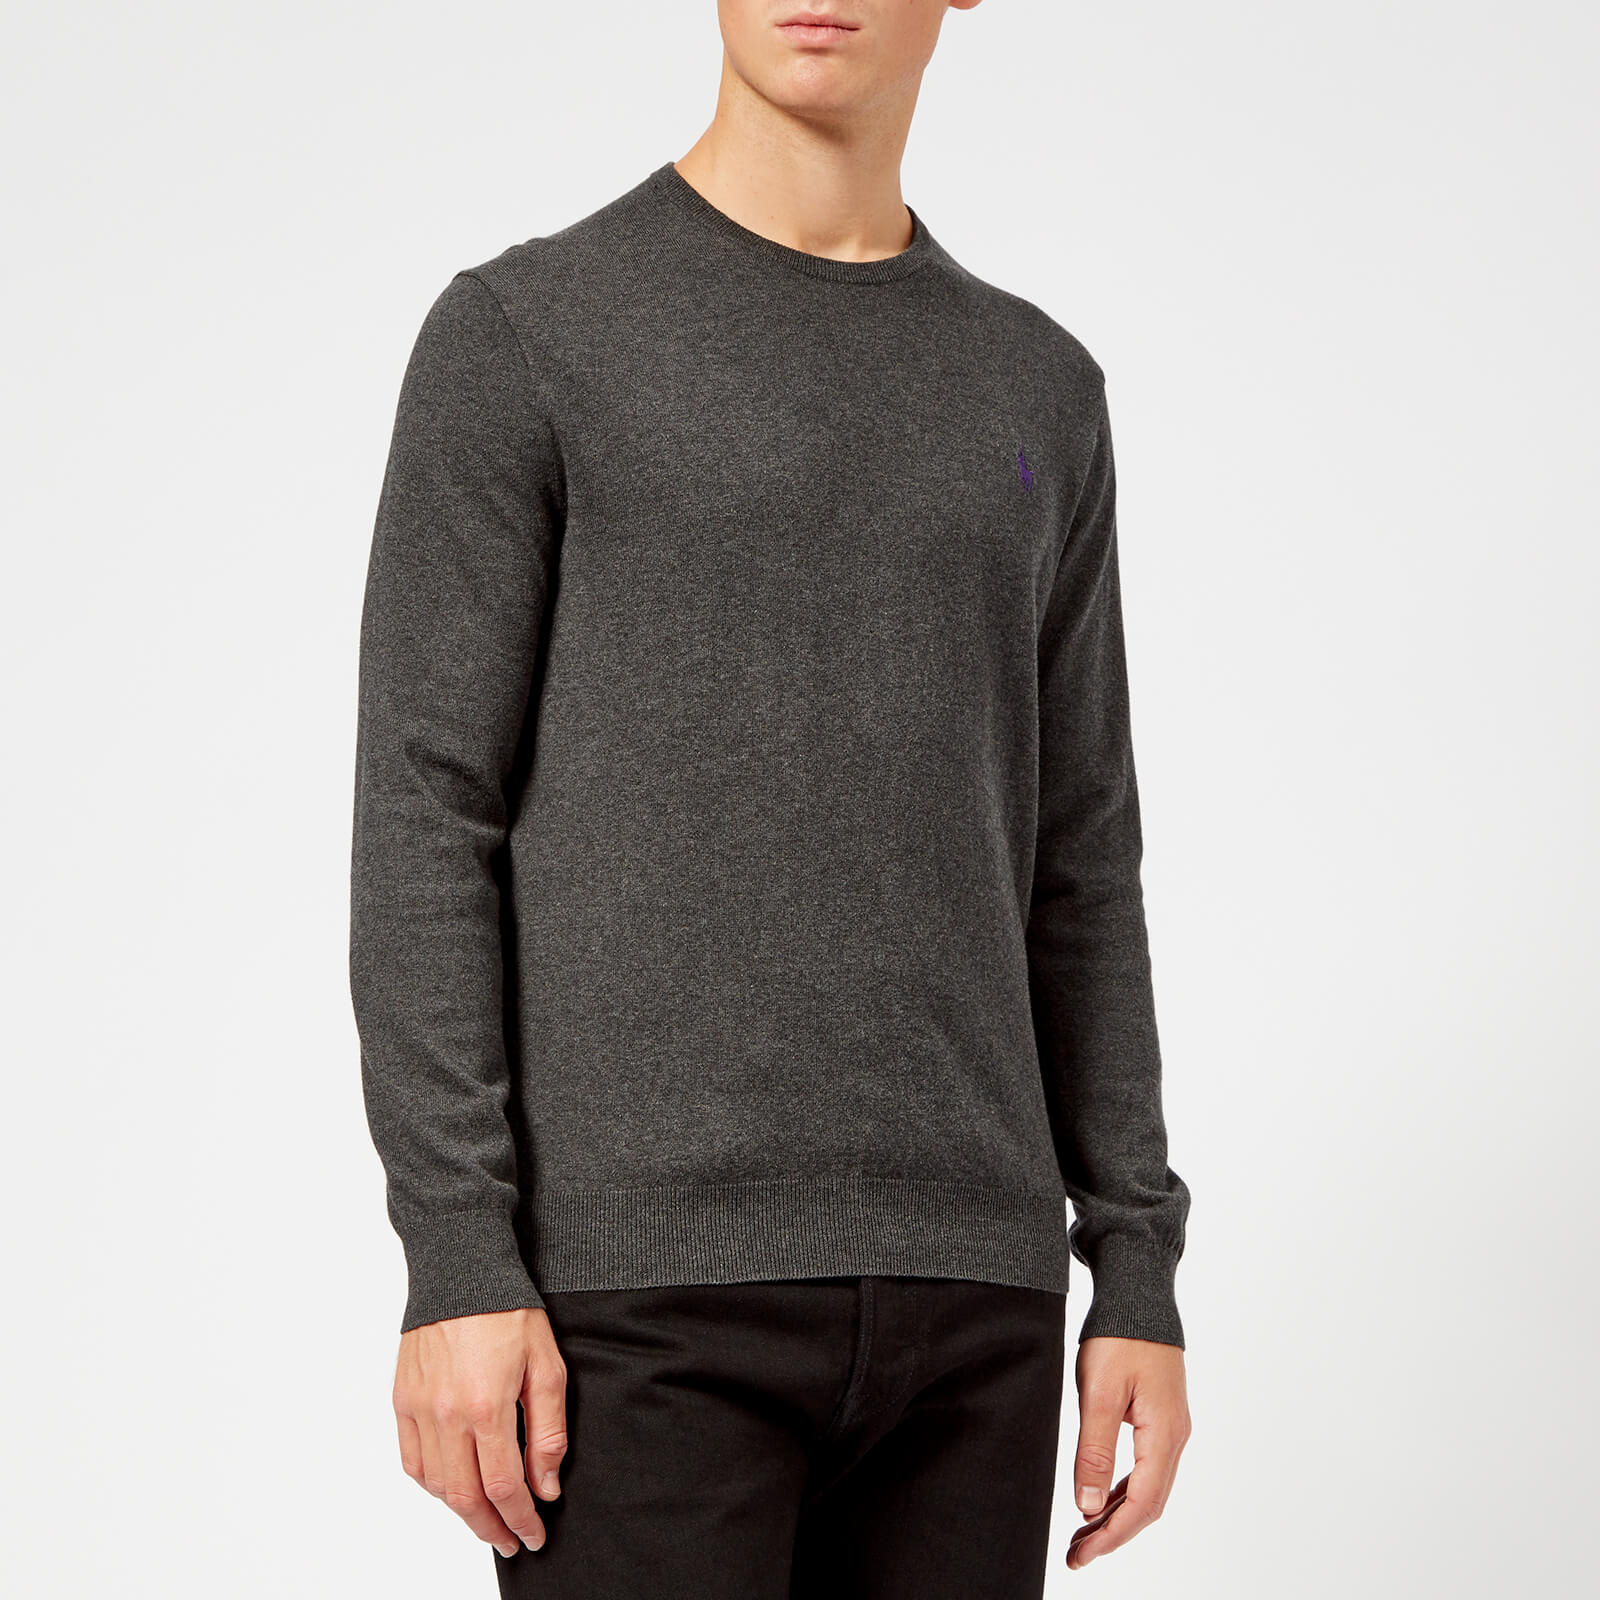 02eb24329 Polo Ralph Lauren Men's Crew Neck Pima Knitted Jumper - Dark Charcoal  Heather - Free UK Delivery over £50